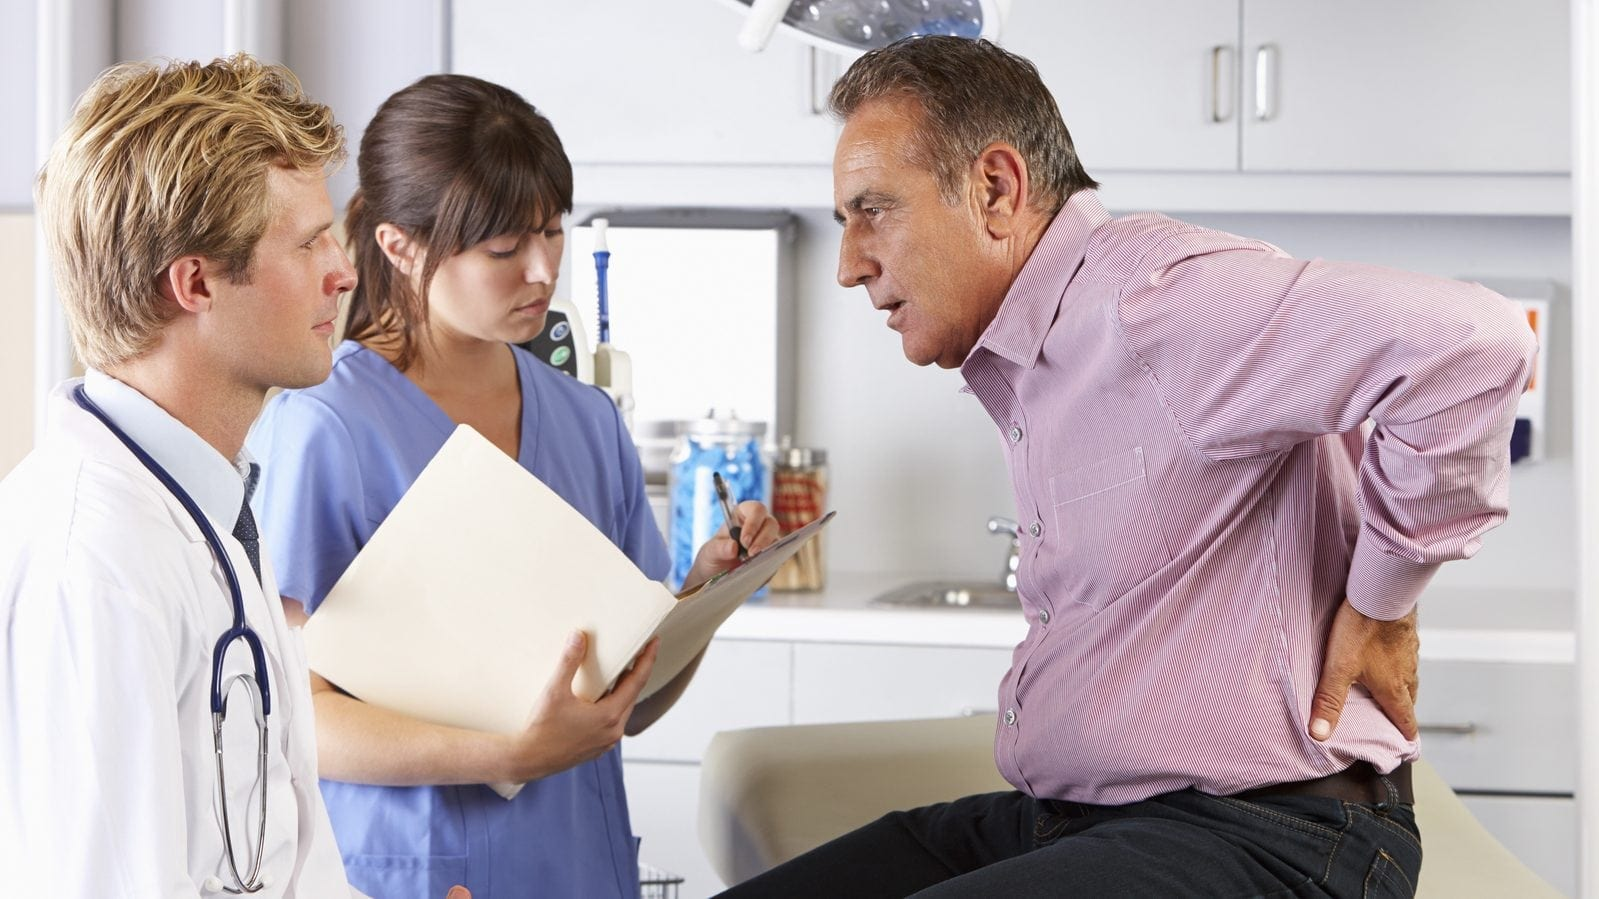 Back Pain Doctor's Office Stock Photo